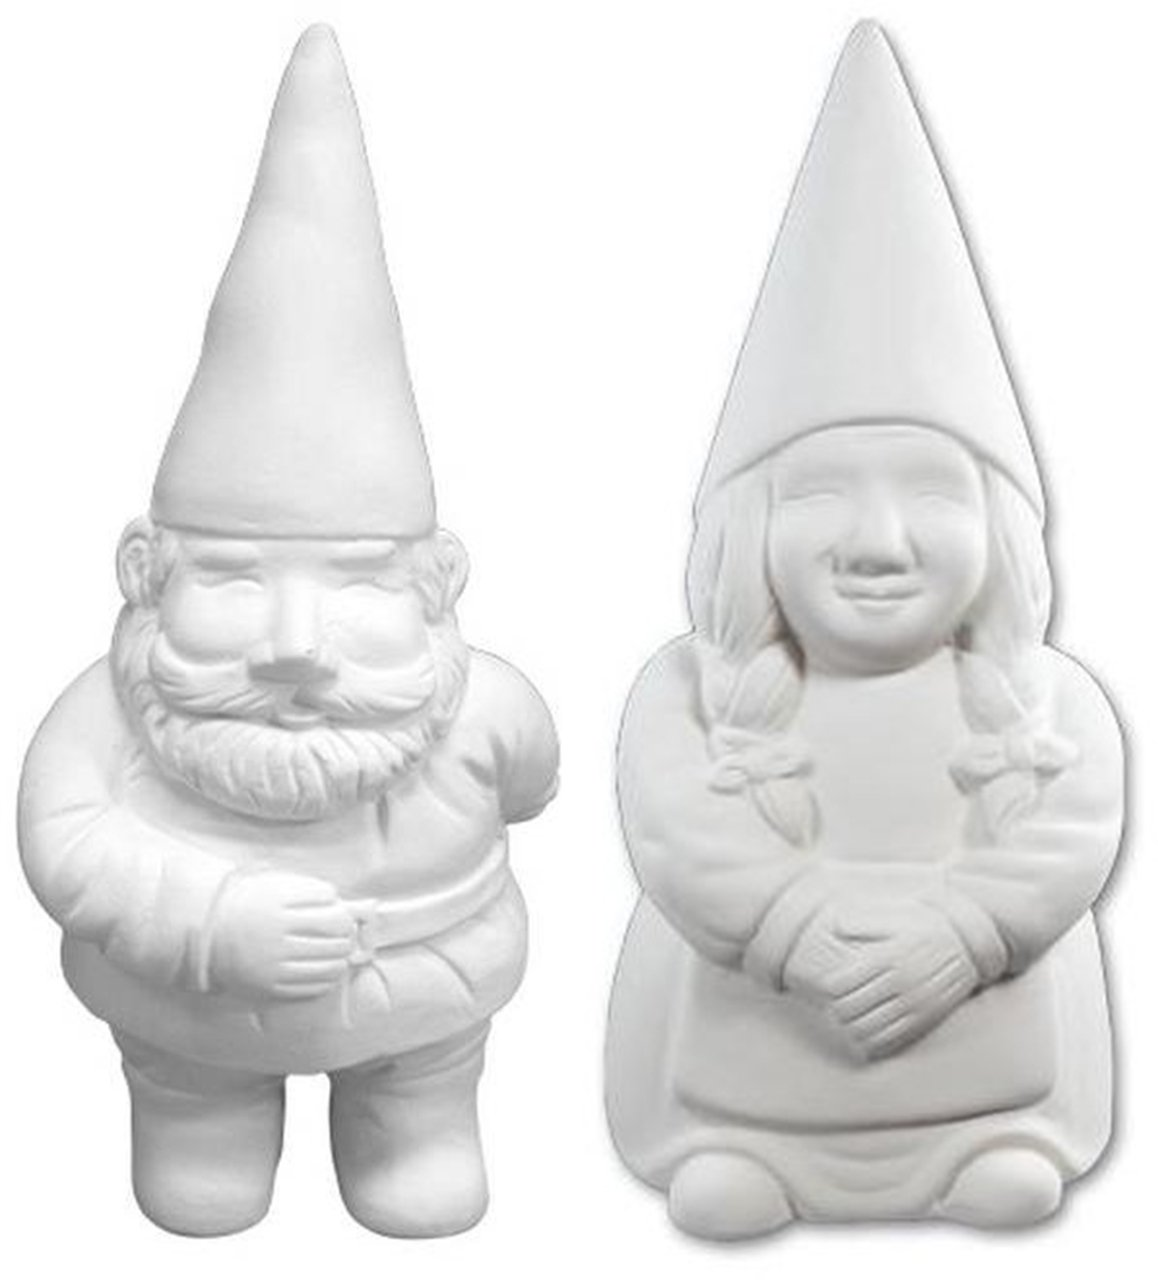 George and Gwen The Garden Gnomes - Paint Your Own Gnome-y Ceramic Keepsakes New Hampshire Craftworks